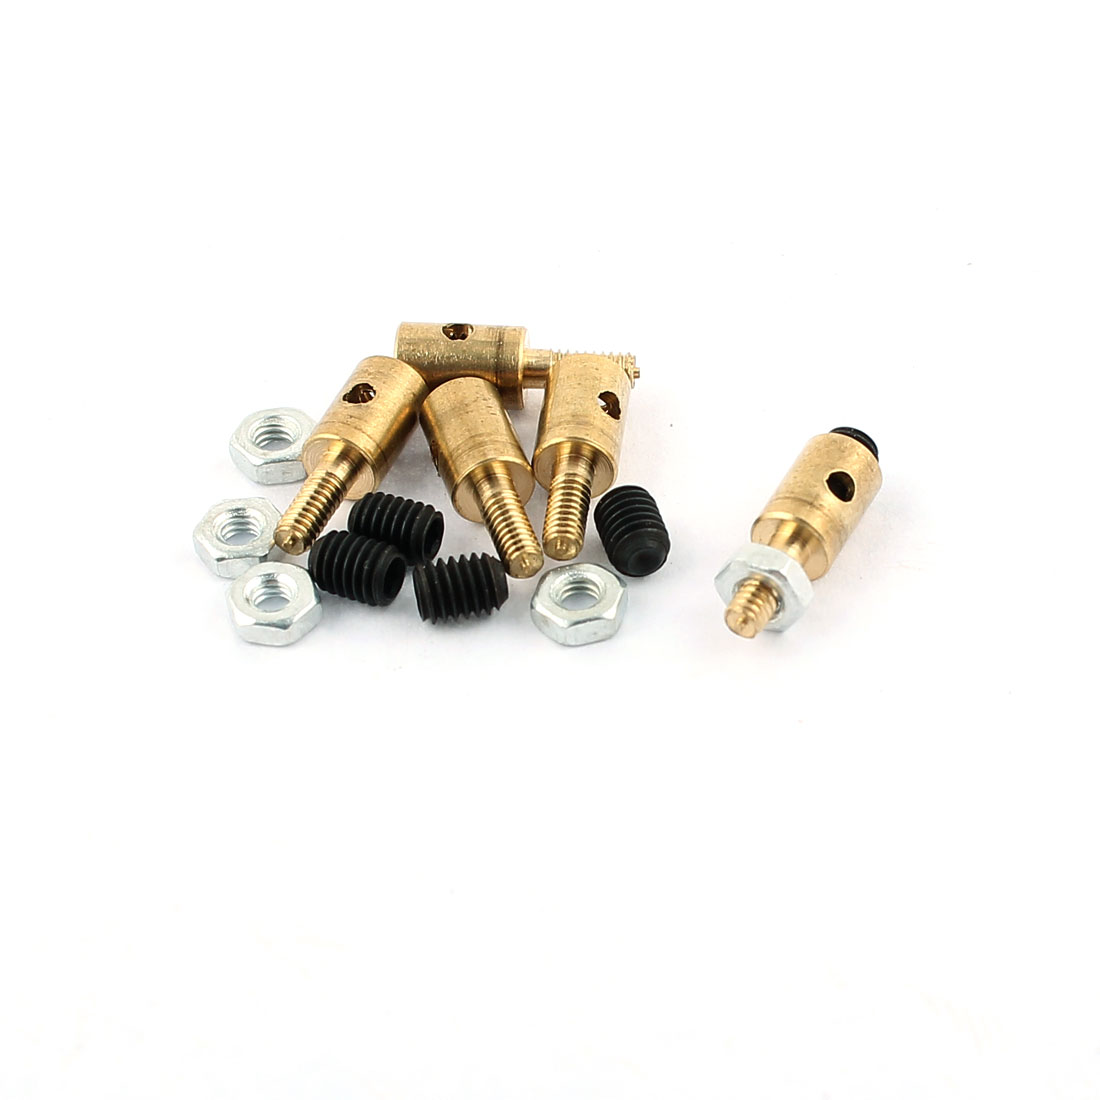 5 Pcs 4 x 1.6 x 11mm Copper Linkage Stoppers PRC Push Rod Keepers w Screws